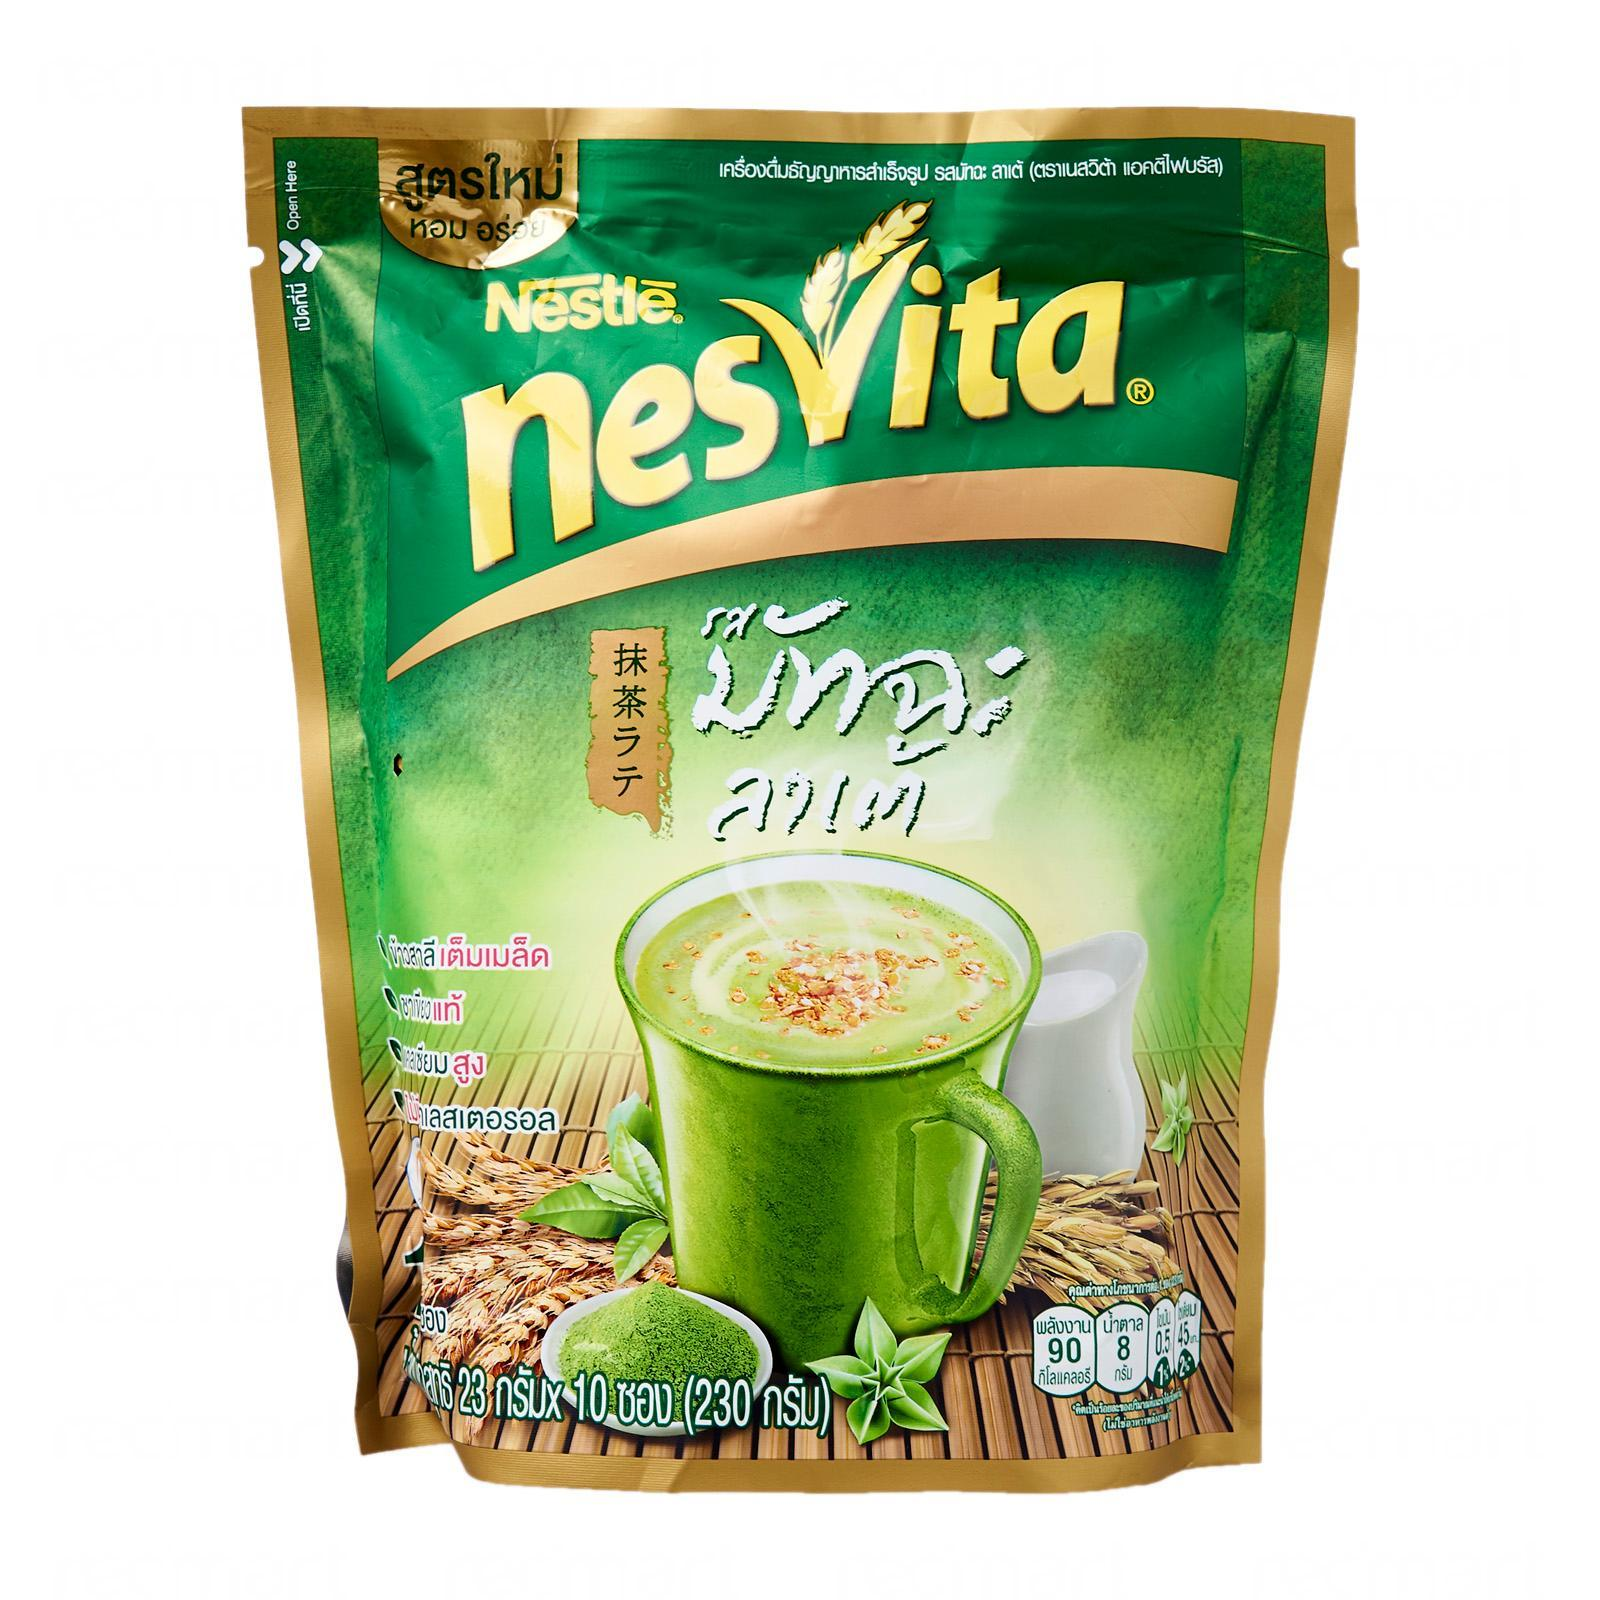 Nesvita Matcha Latte Instant Cereal Beverage (nestle) By Redmart.